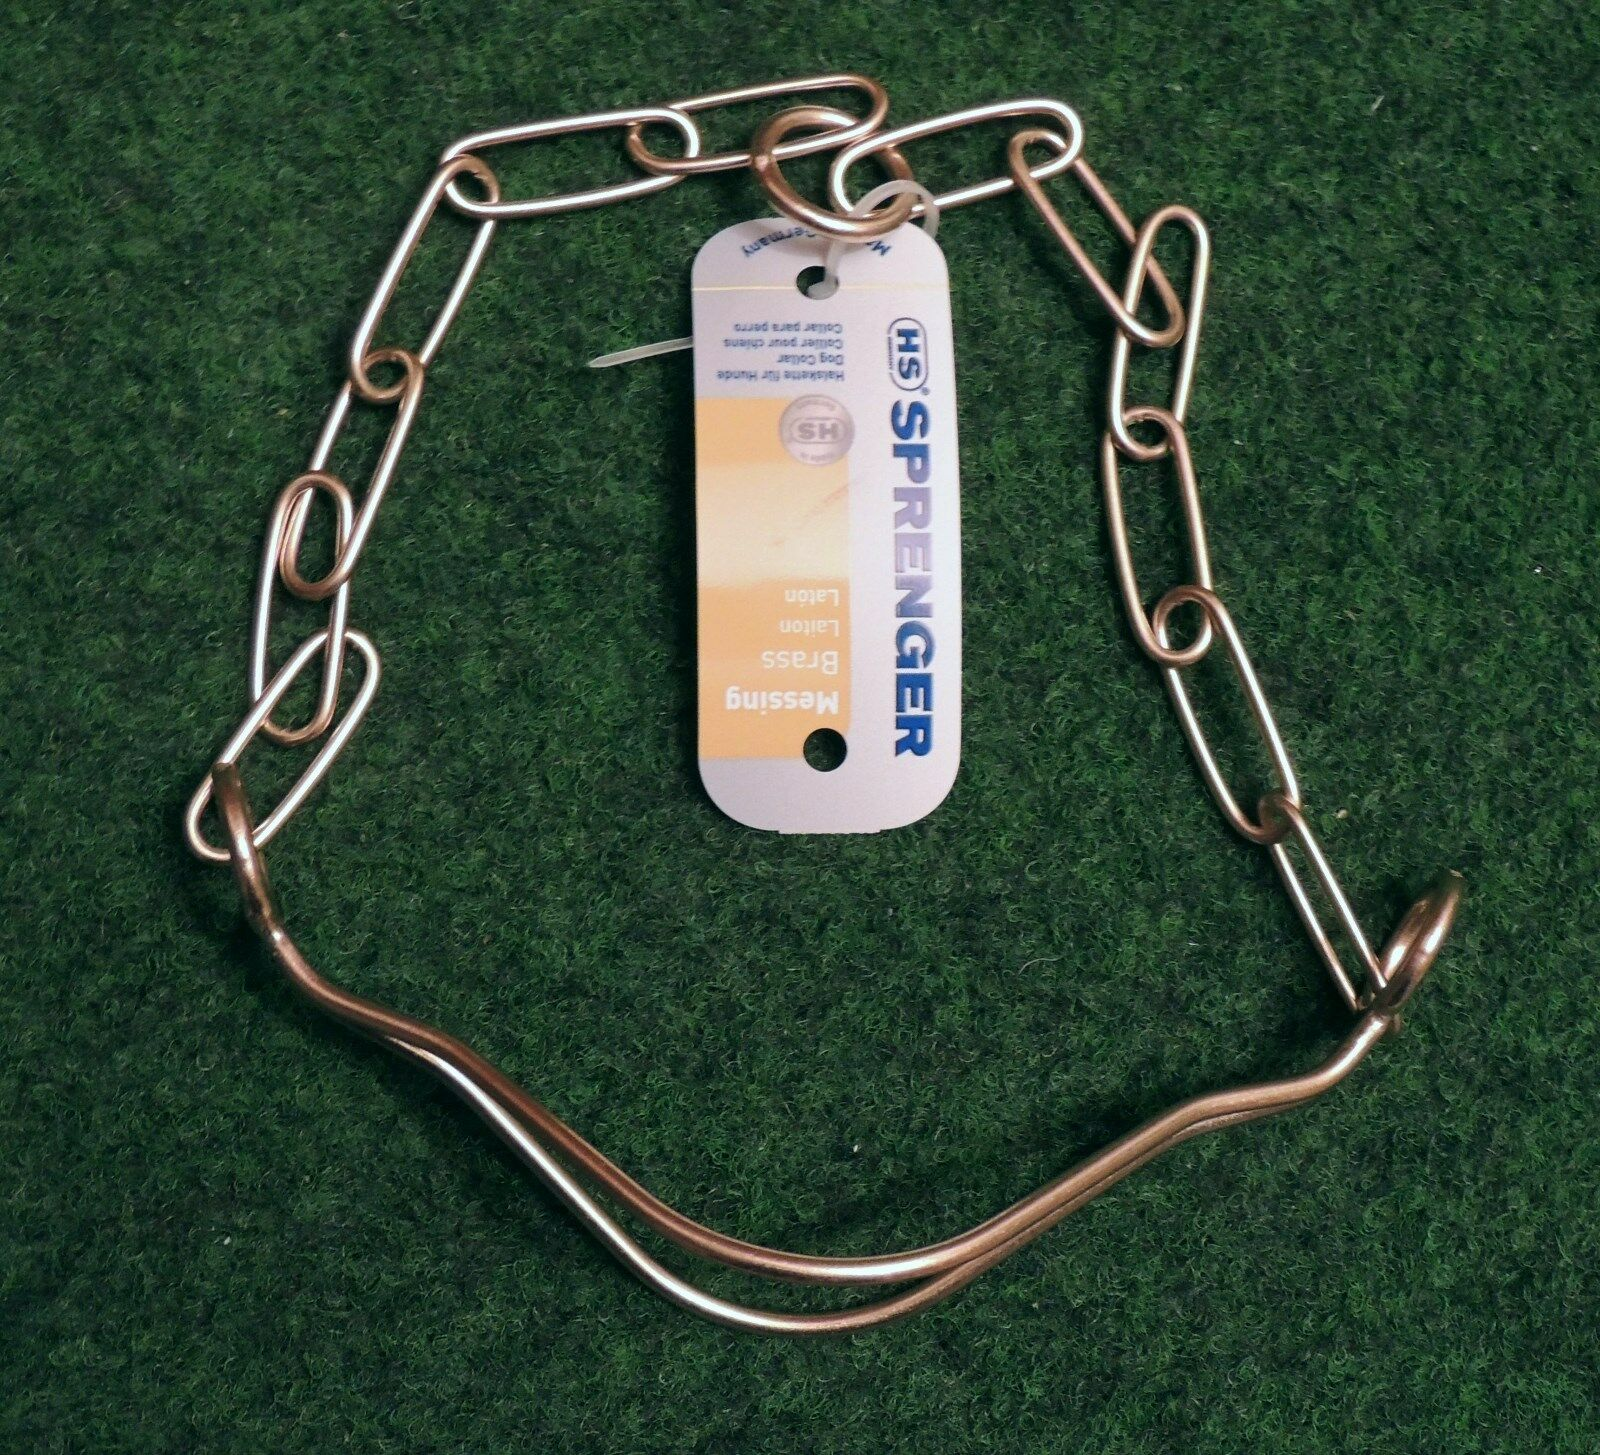 1 guarda collana in ottone 64cm HS Sprenger GERMANY collare da cane (cani schäferh.